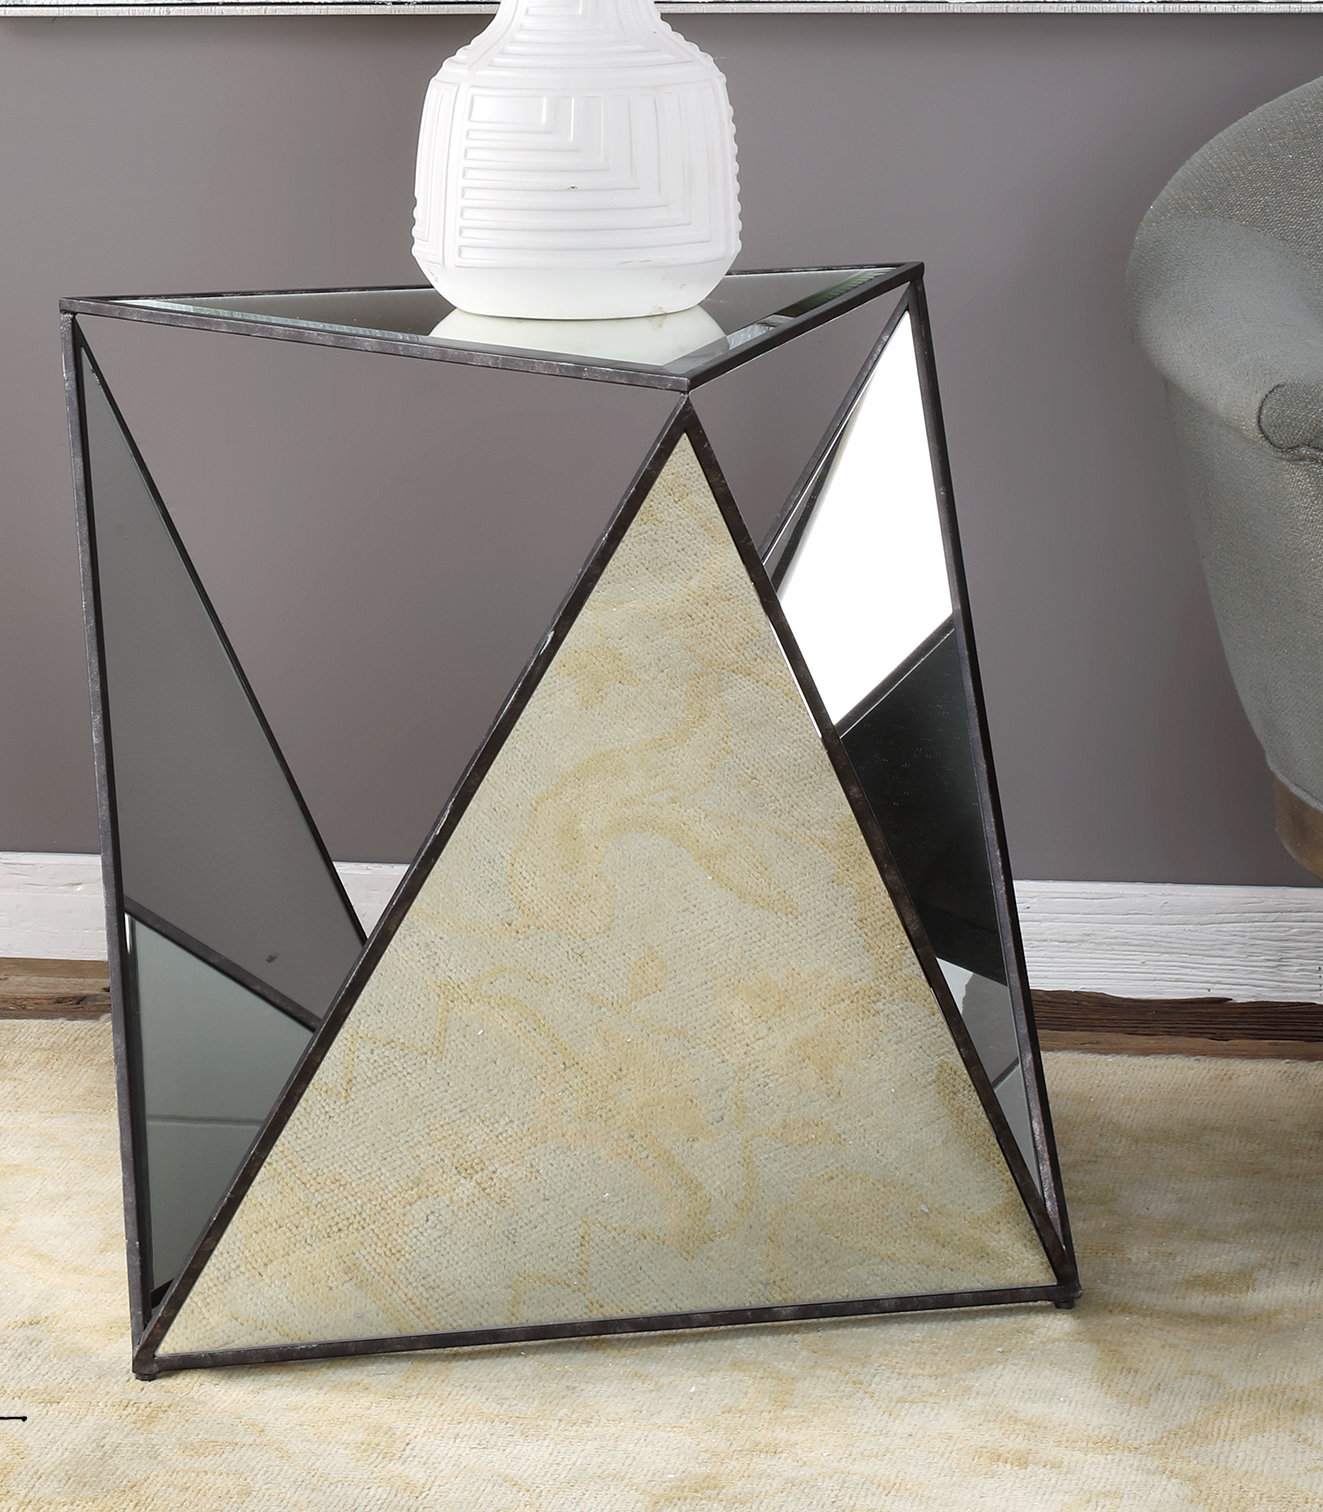 everly quinn smiley tripod mirrored end table pyramid accent yellow umbrella himym outdoor patio with round removable legs mahogany nest tables pier one credit card login home